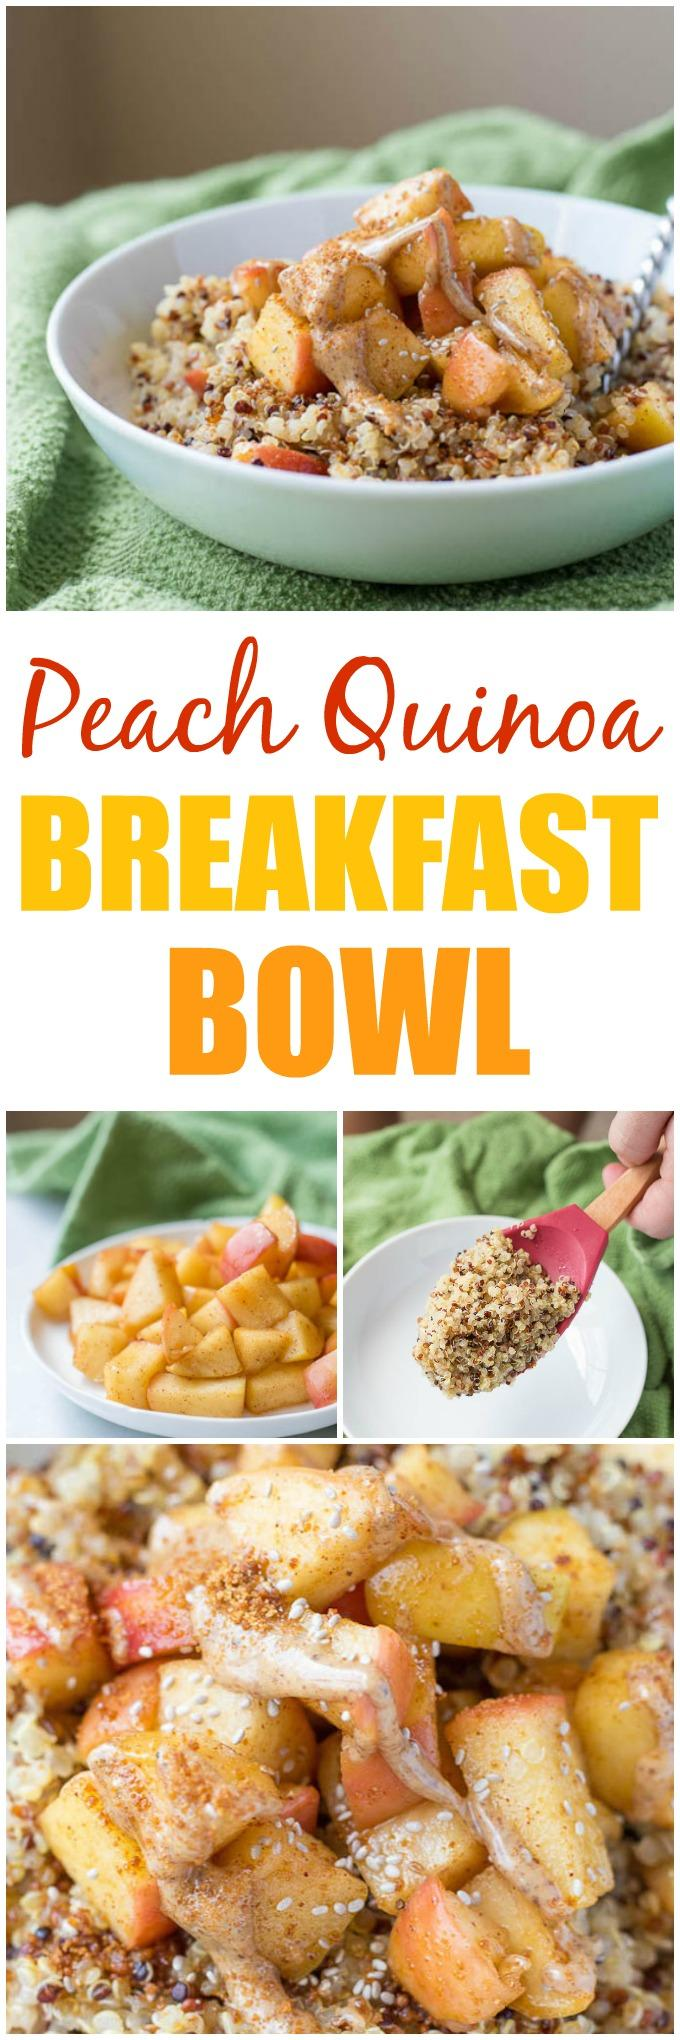 This Caramelized Peach and Quinoa Breakfast Bowl is packed with protein and makes a great summer breakfast.